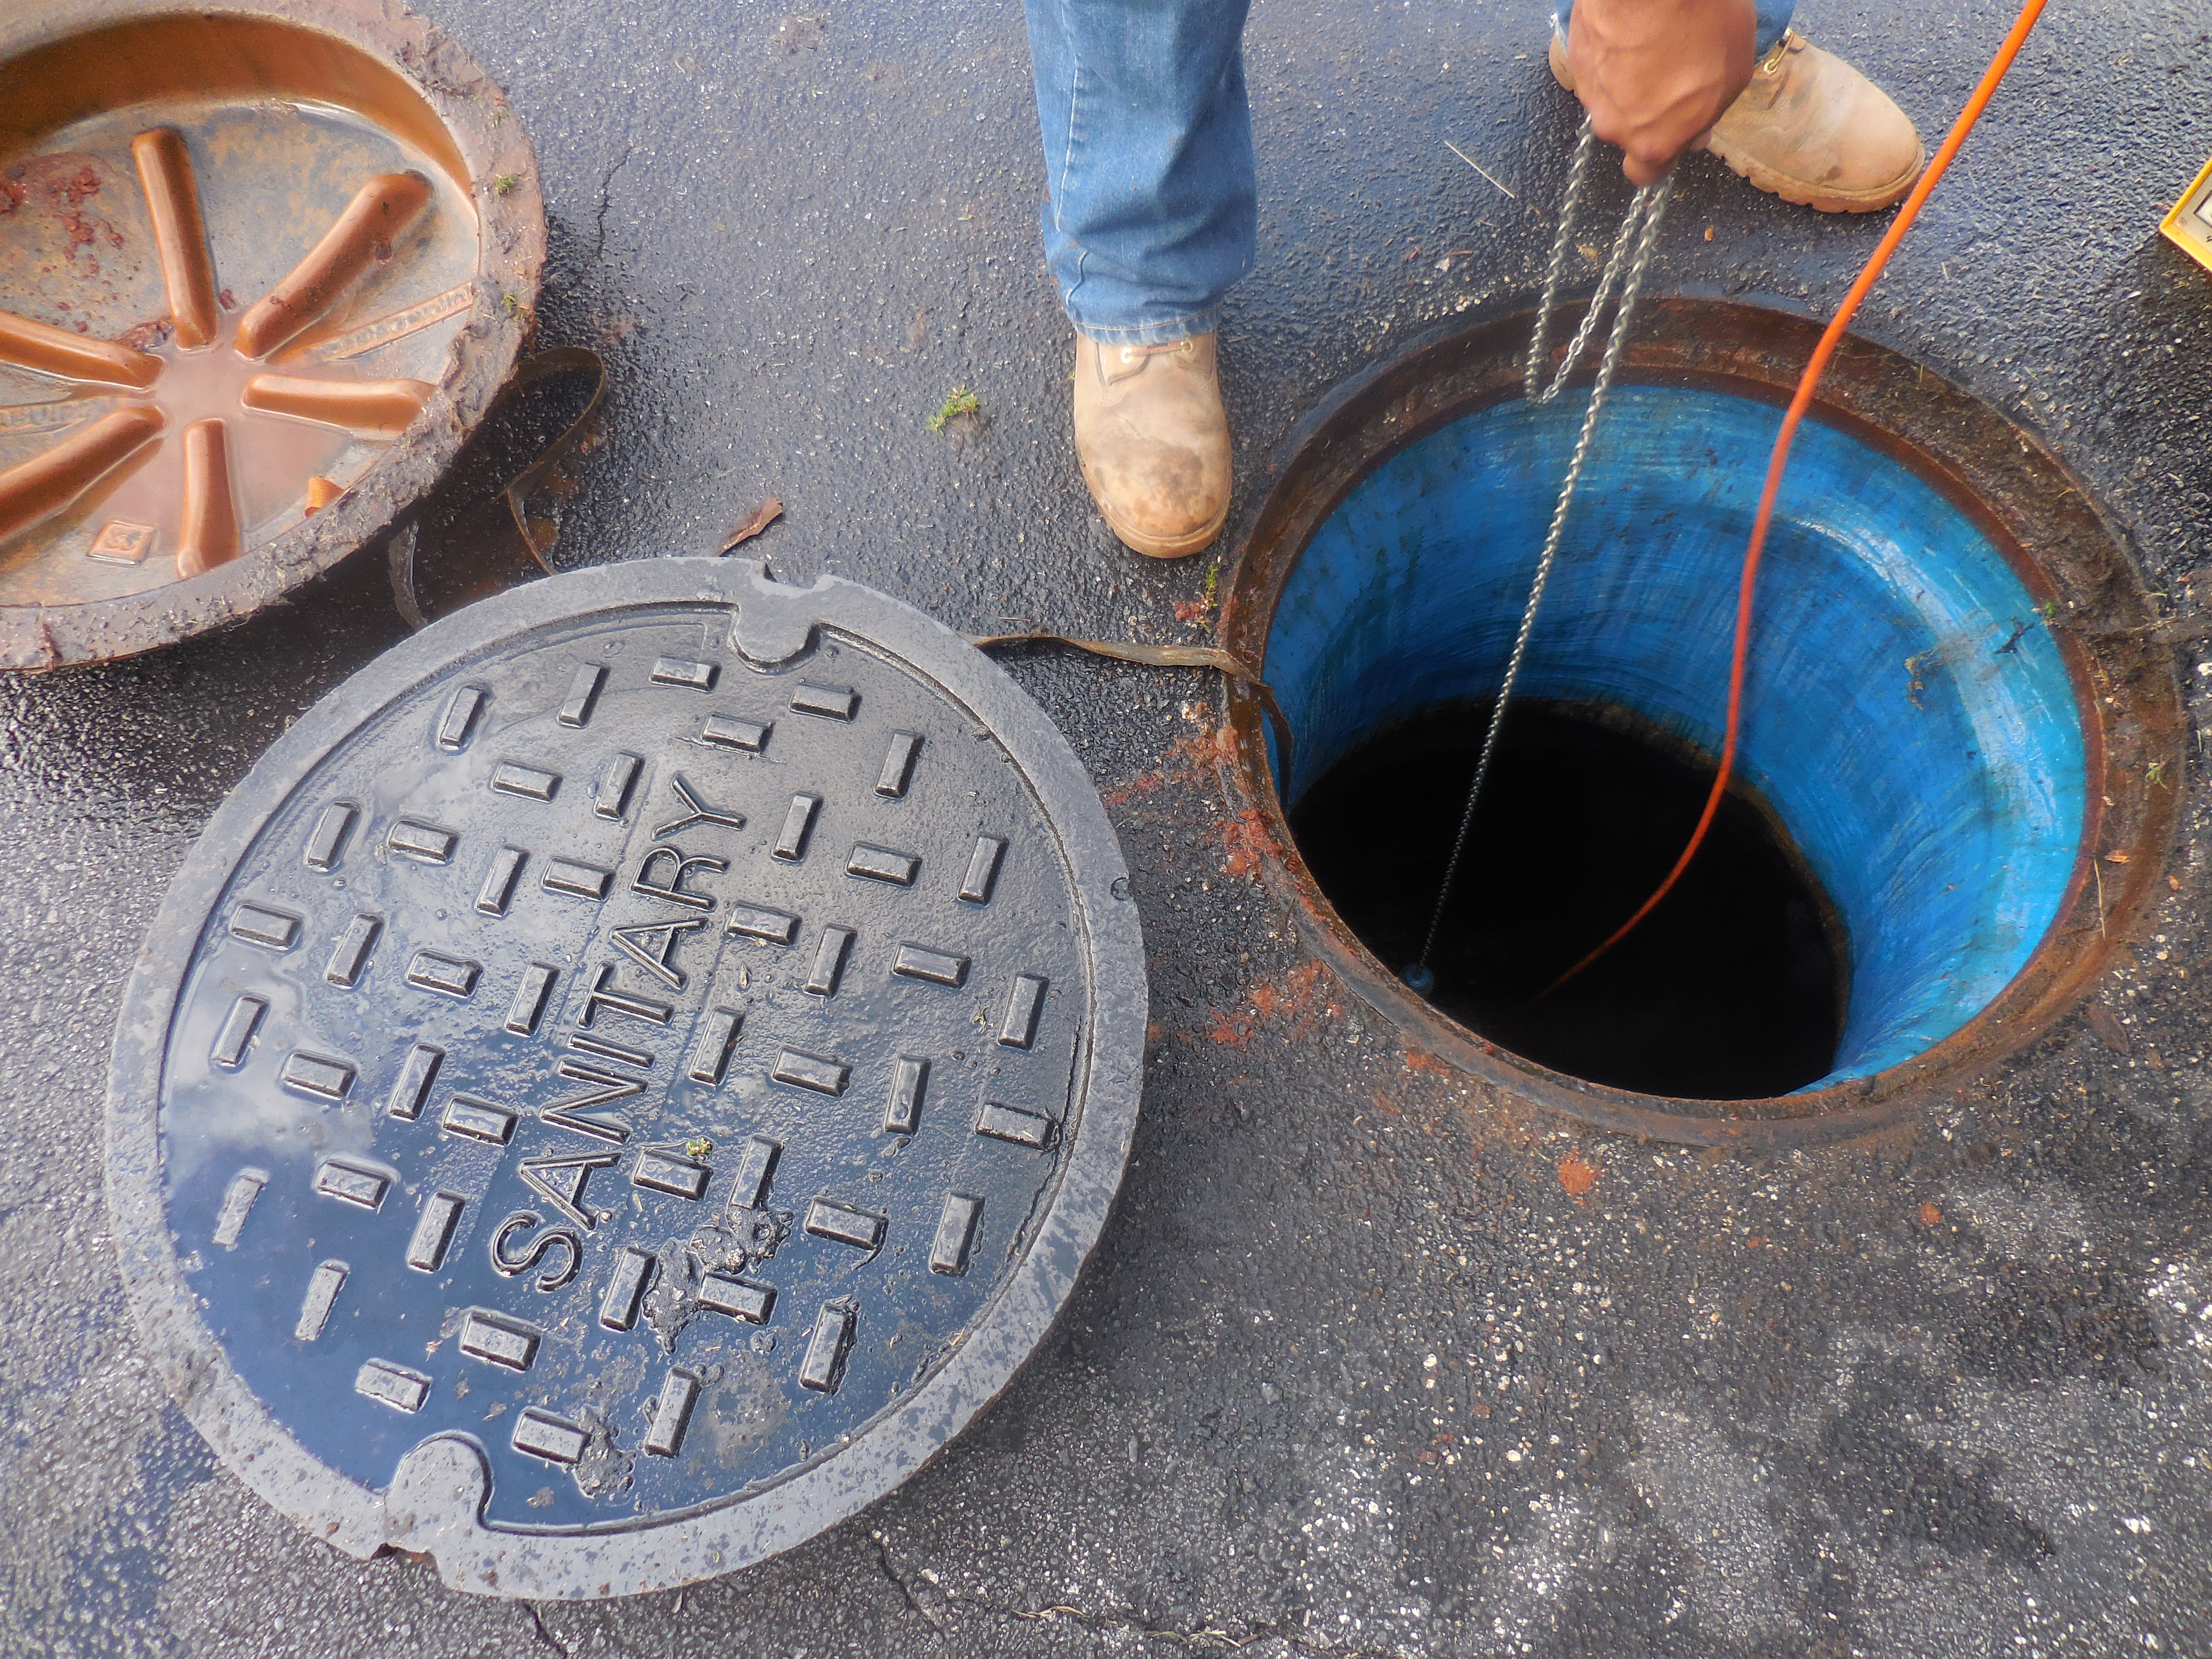 Sewer Cleaning And Repair Service In The Orlando Florida